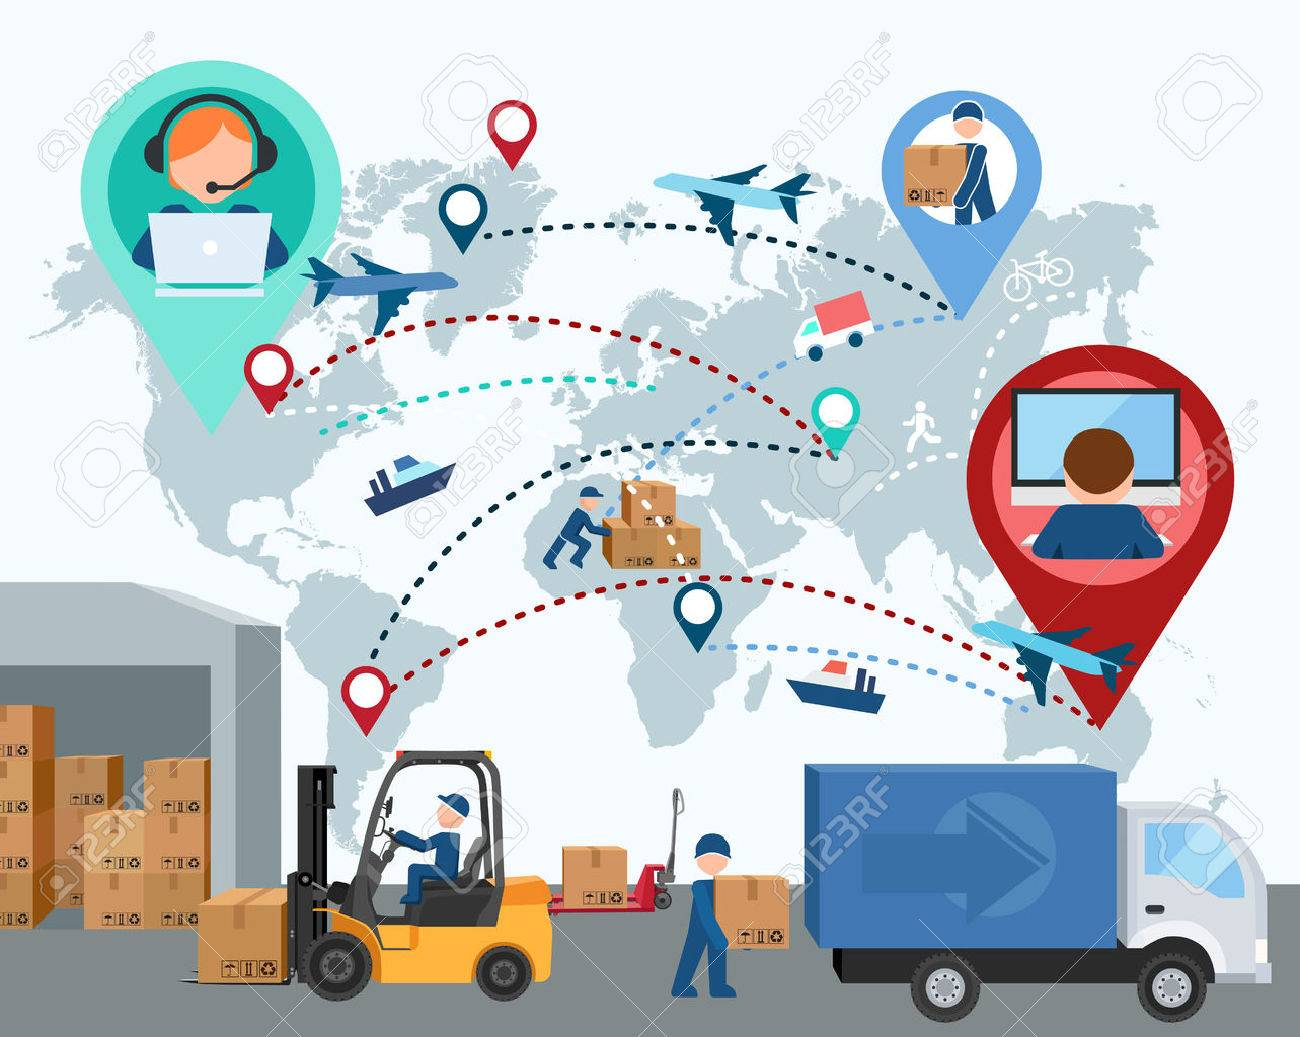 Production, transportation, delivery of cargo. People. Infographics. Forklift. Map. illustration - 50549795